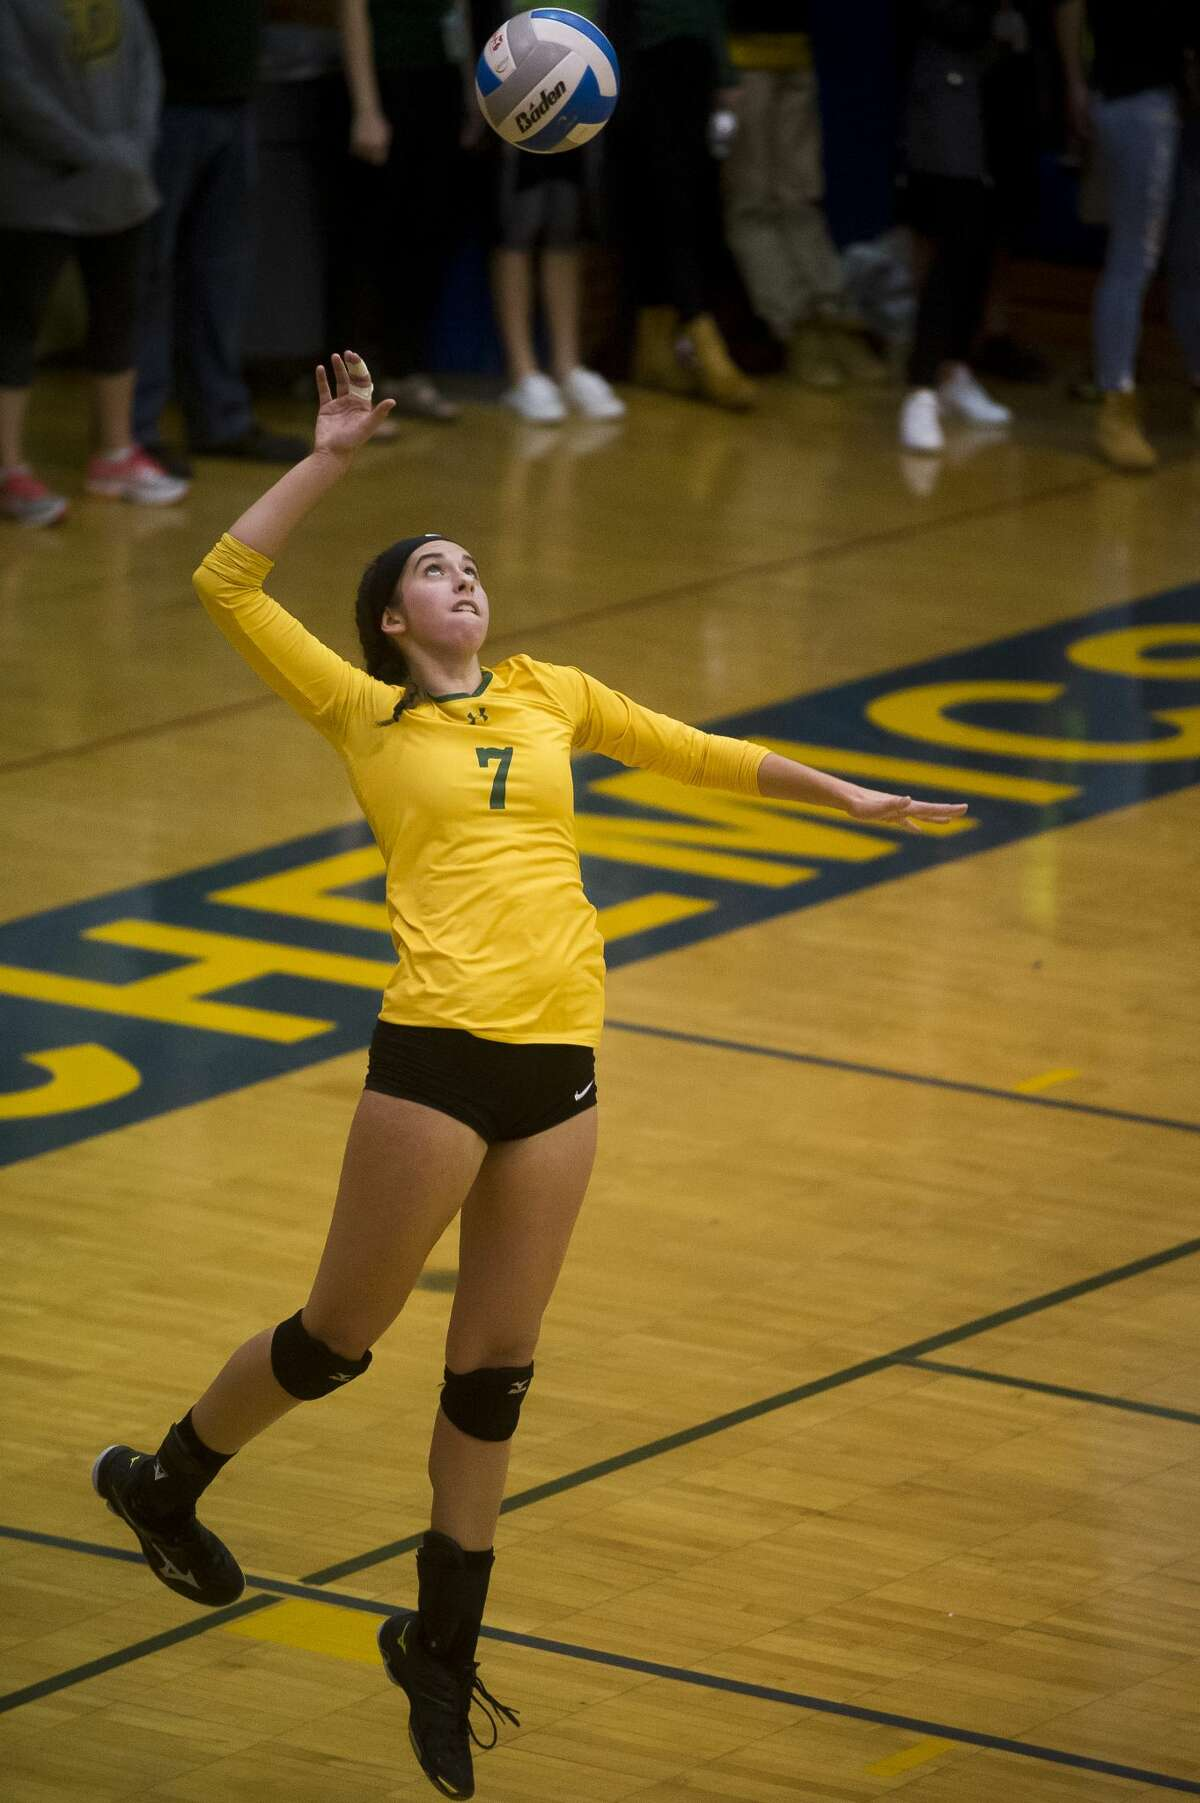 Dow sophomore Hailey Tanis serves the ball during a match against Midland on Tuesday, Oct. 24, 2017 at Midland High. (Katy Kildee/kkildee@mdn.net)